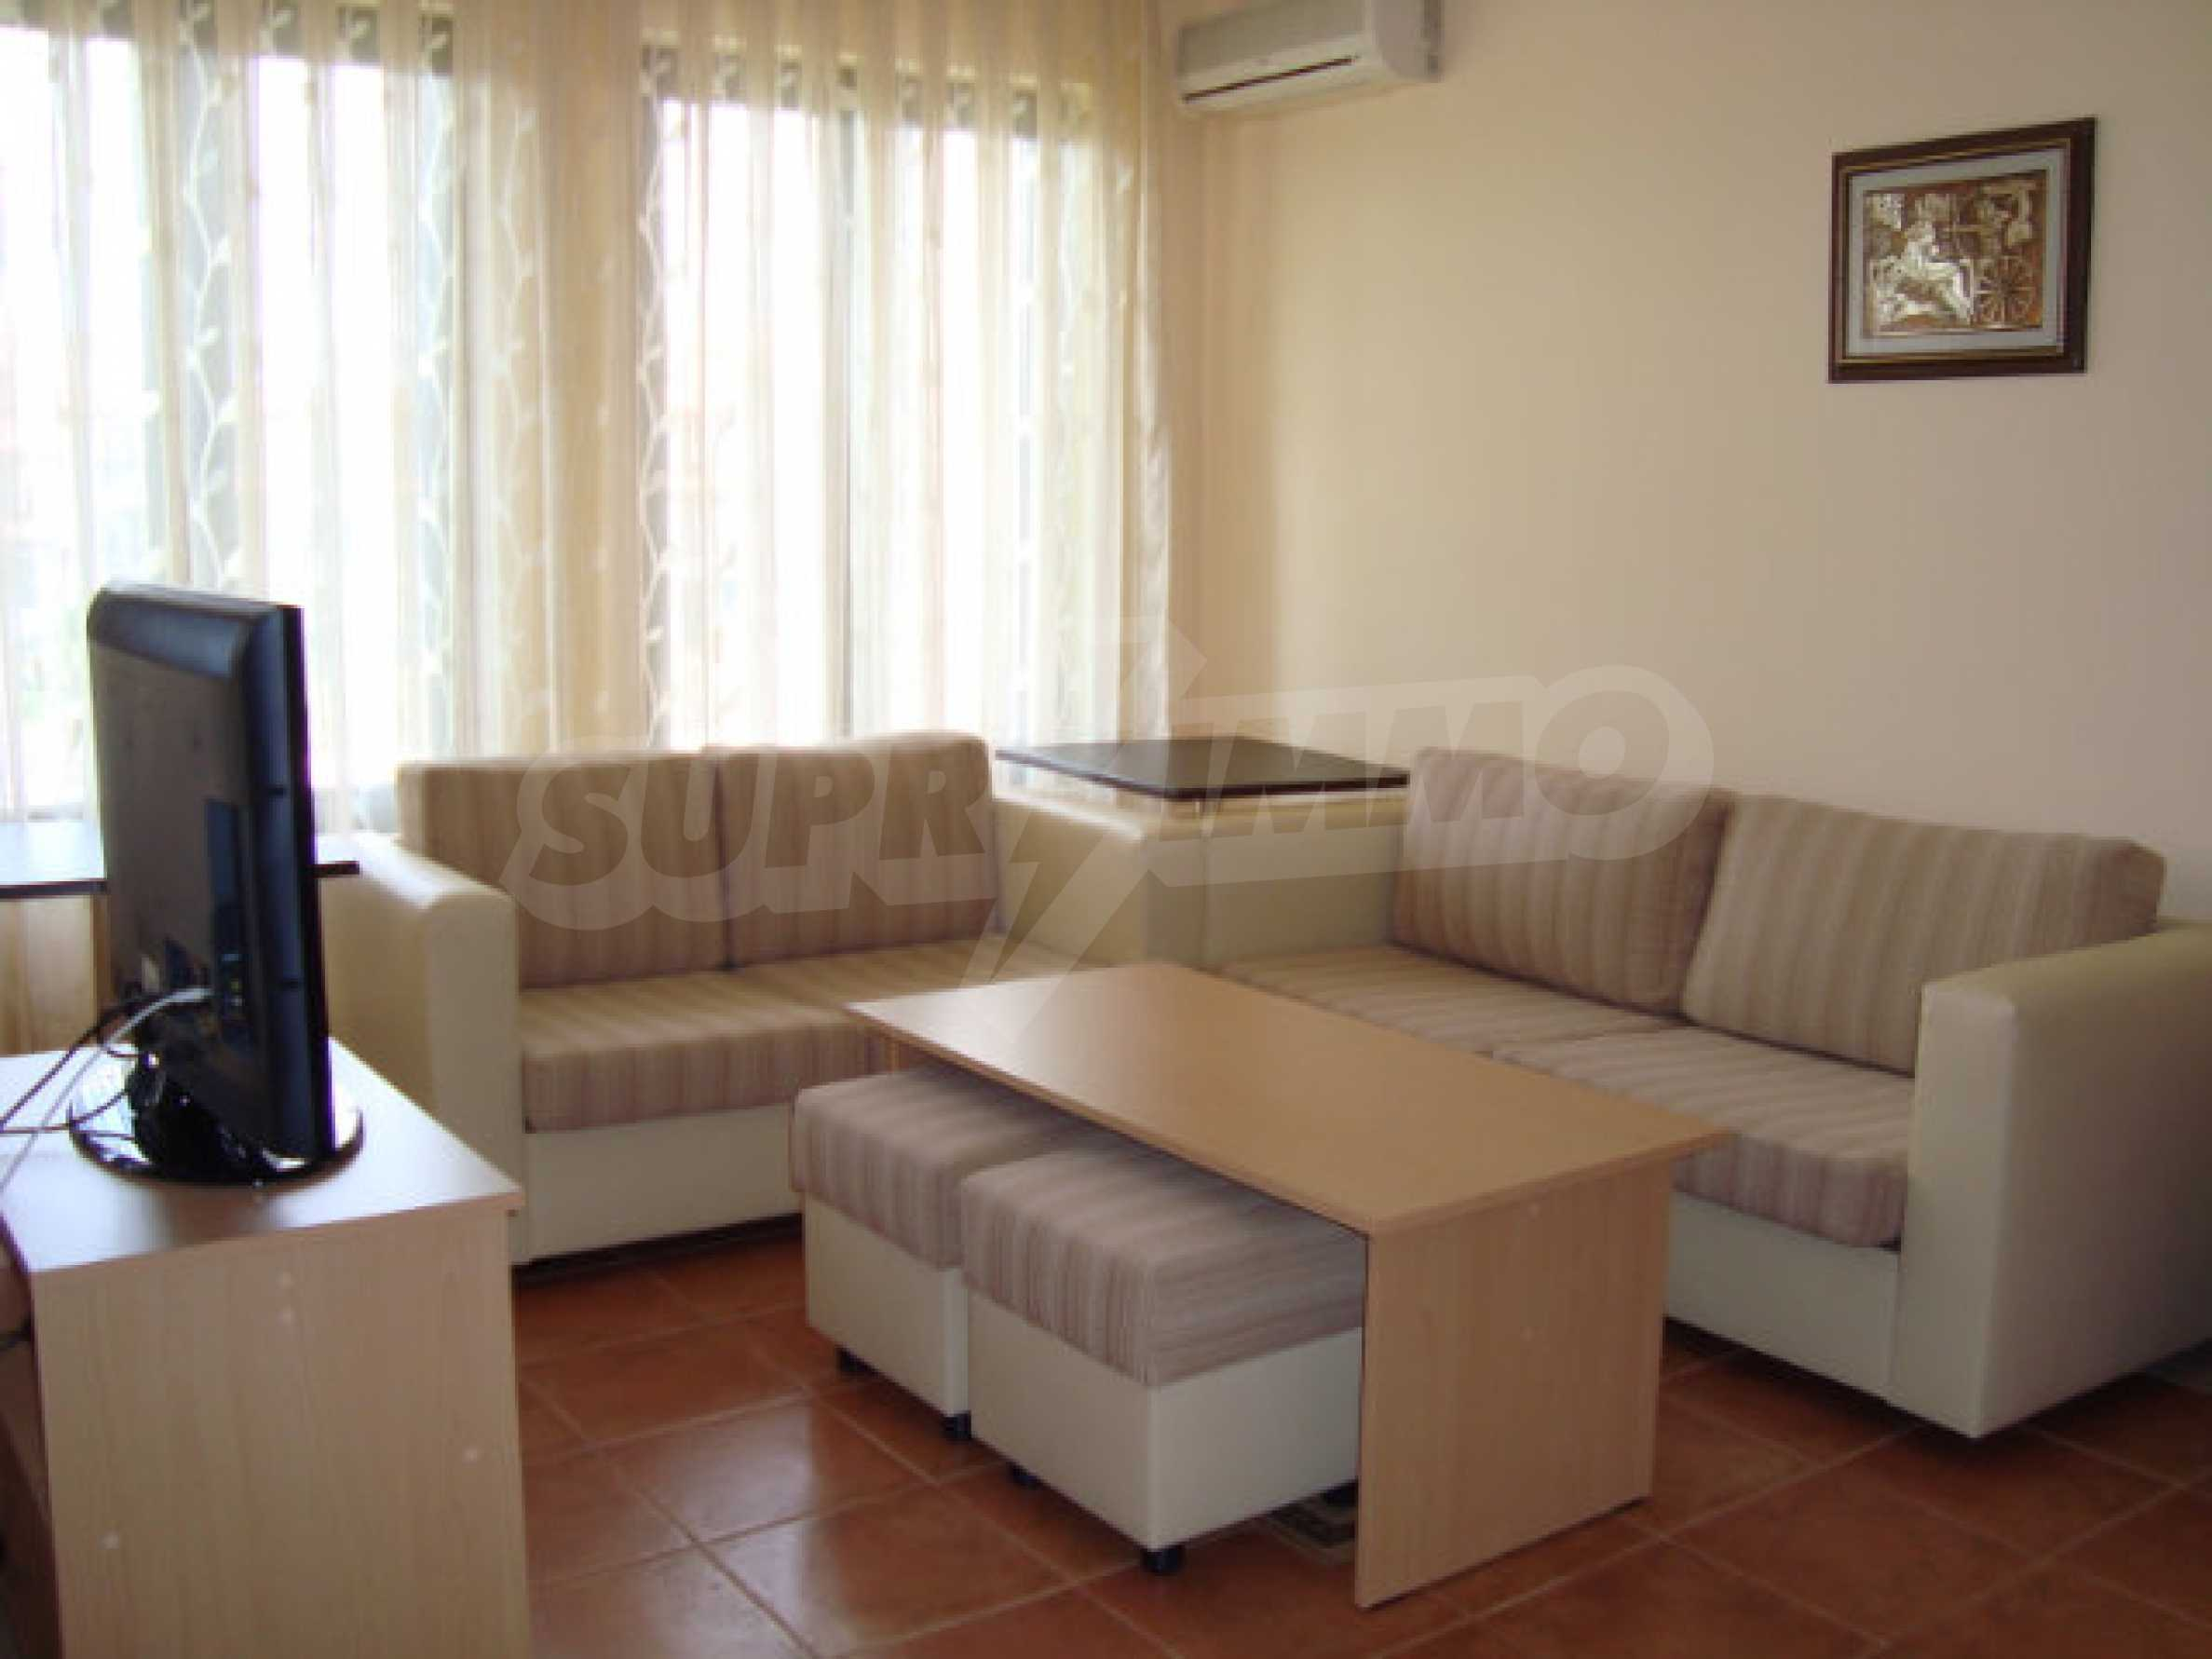 Two-bedroom apartment in Saint Nicholas complex in Chernomorets 3